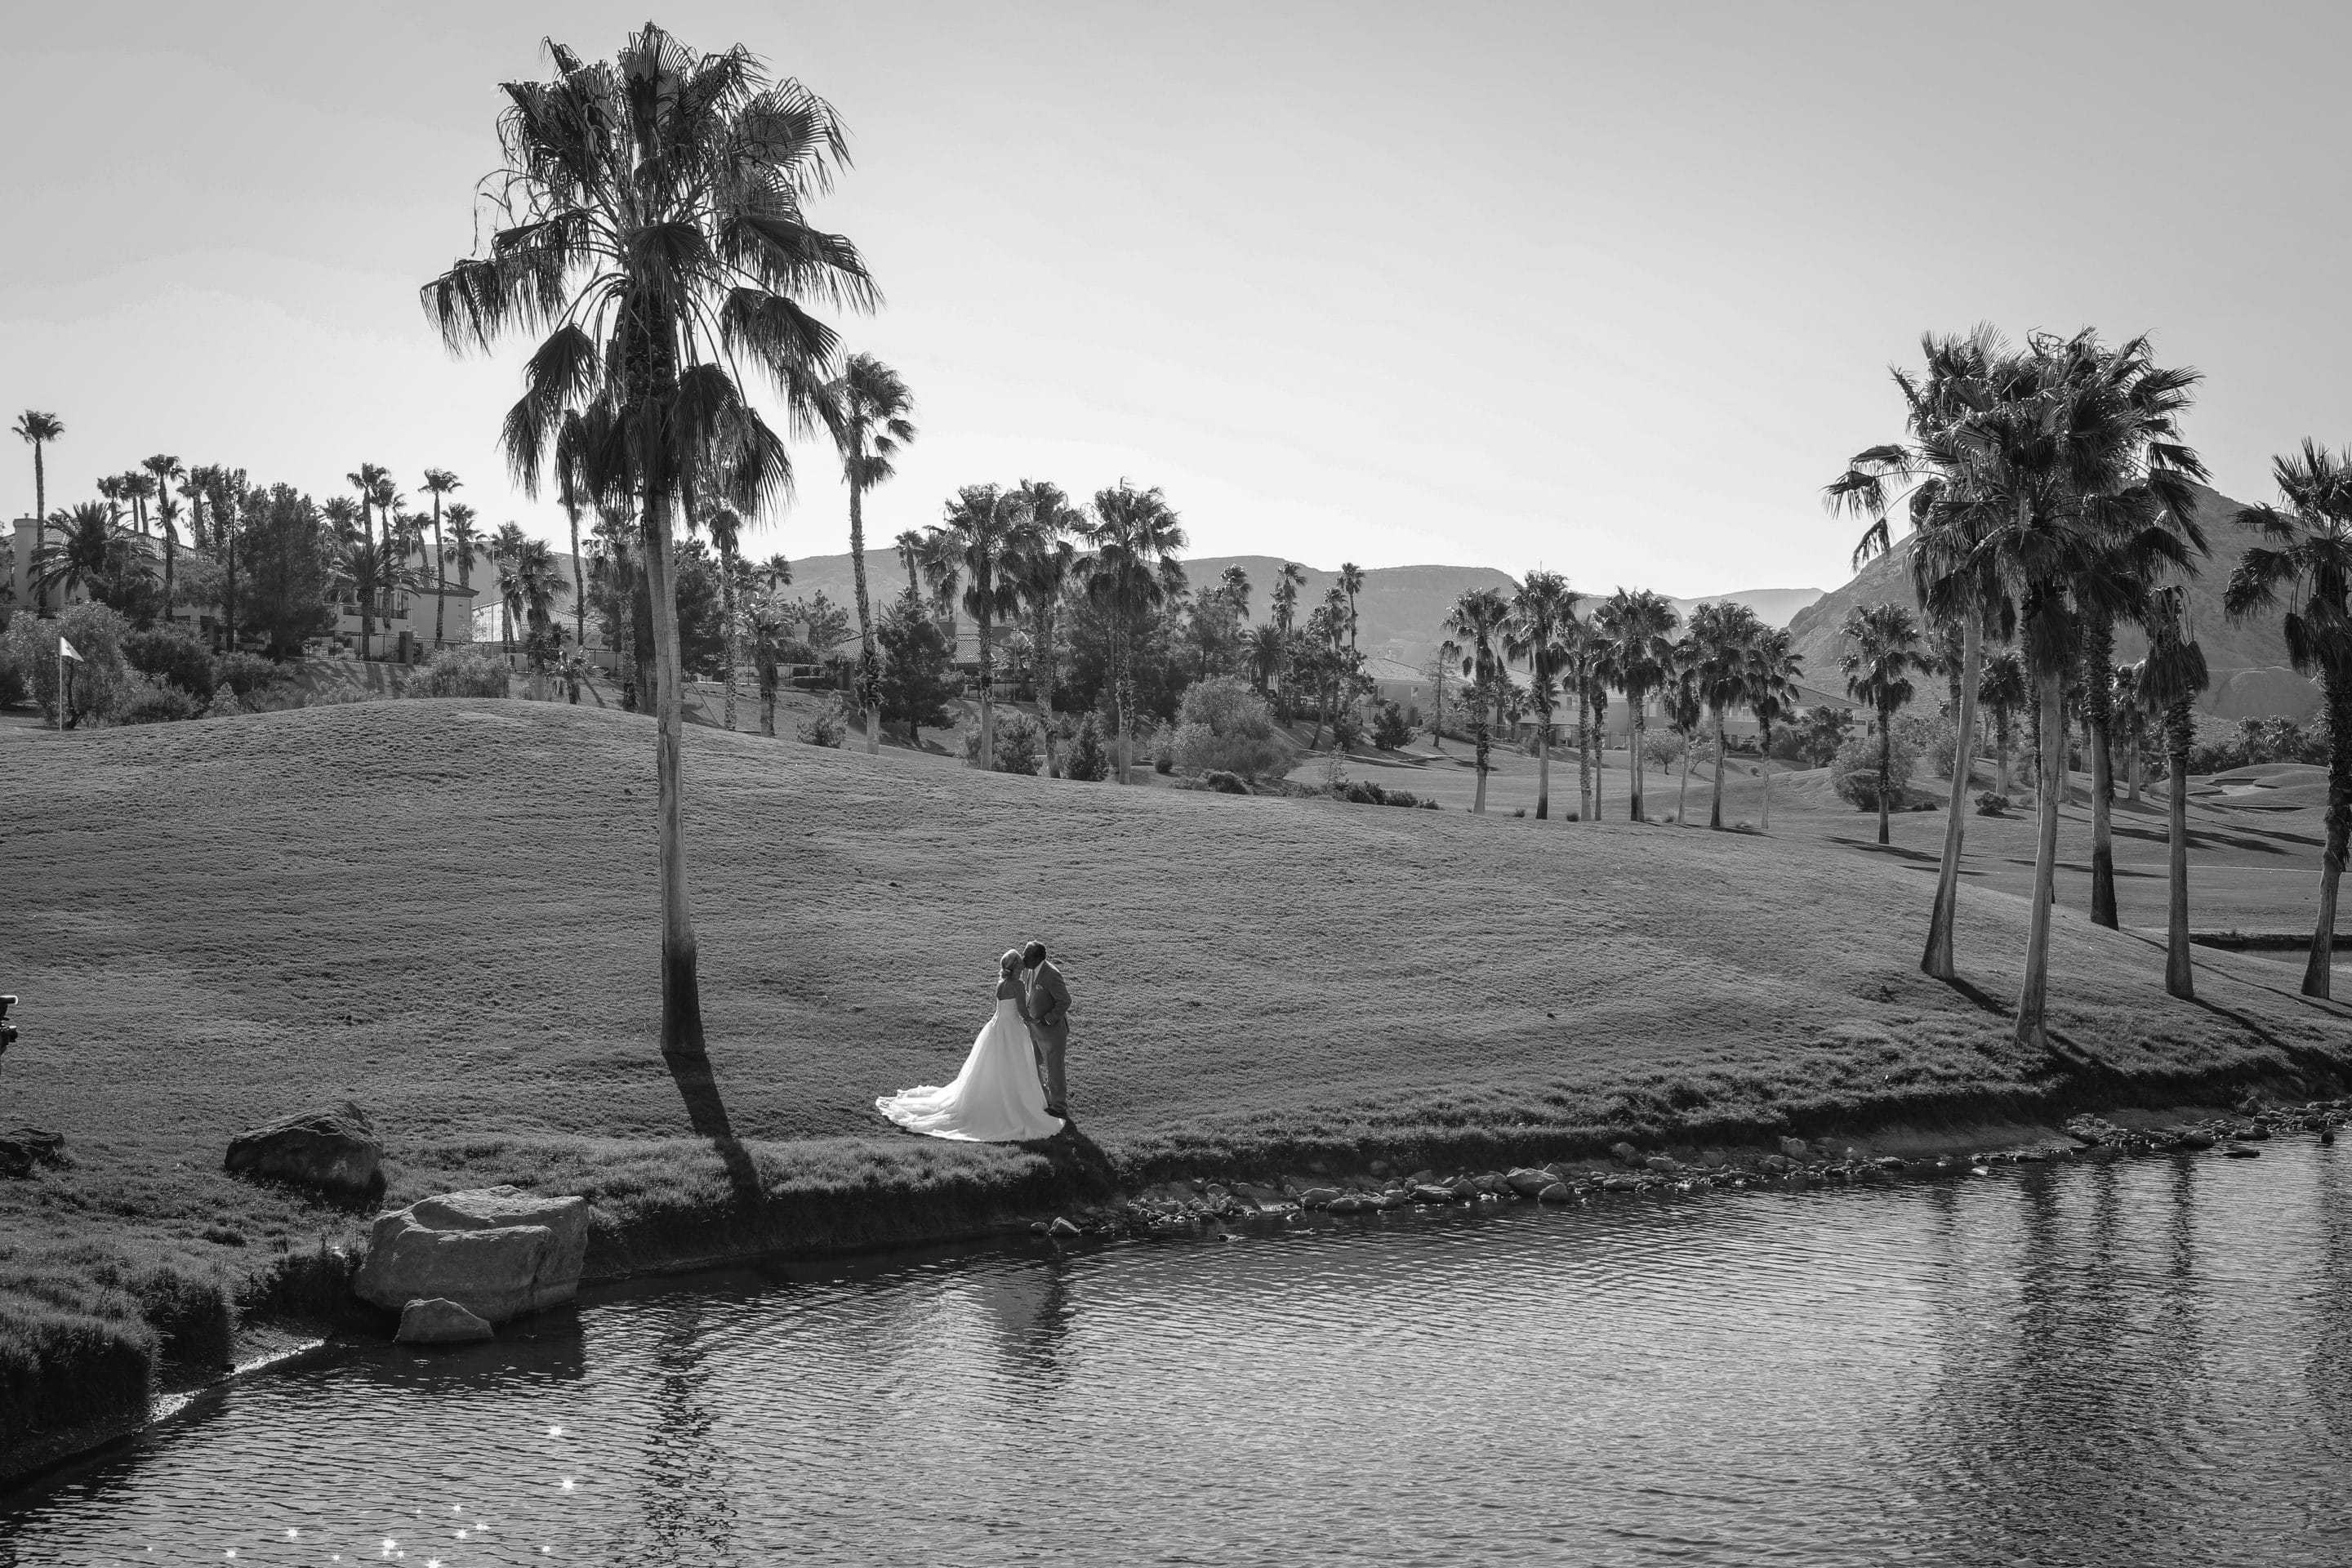 Couple marrying on Las Vegas golf course